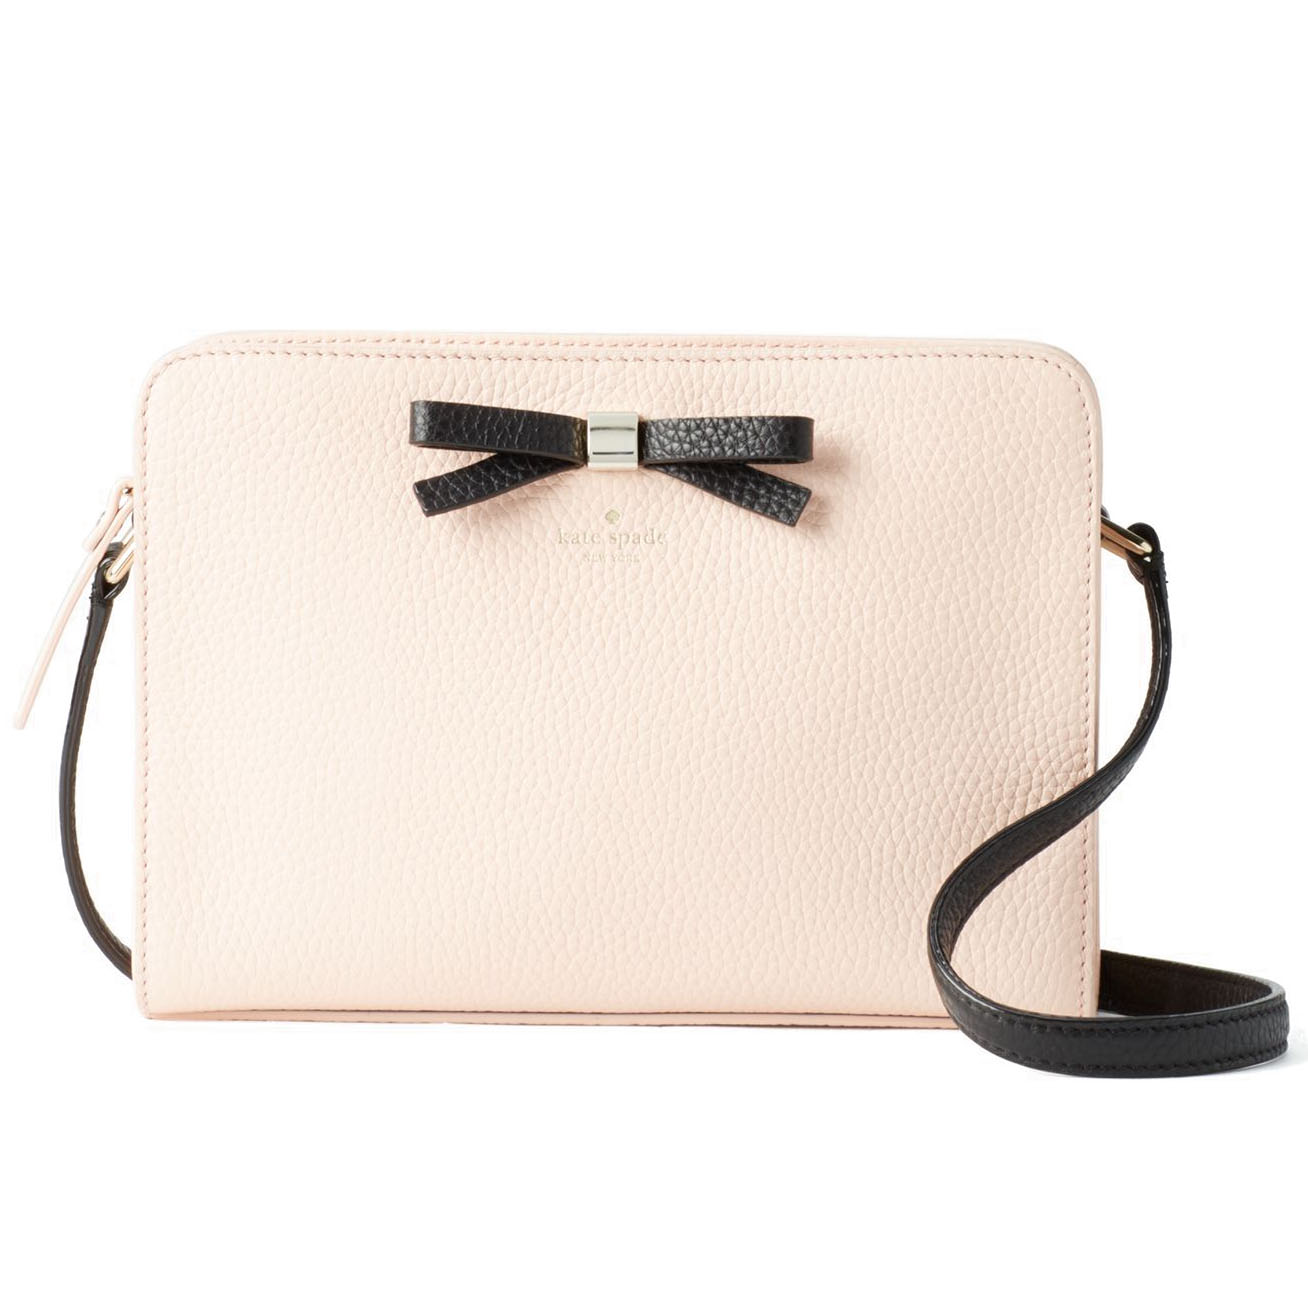 Kate Spade Henderson Street Fannie Crossbody Bag Black / Urchin Pink # WKRU4578